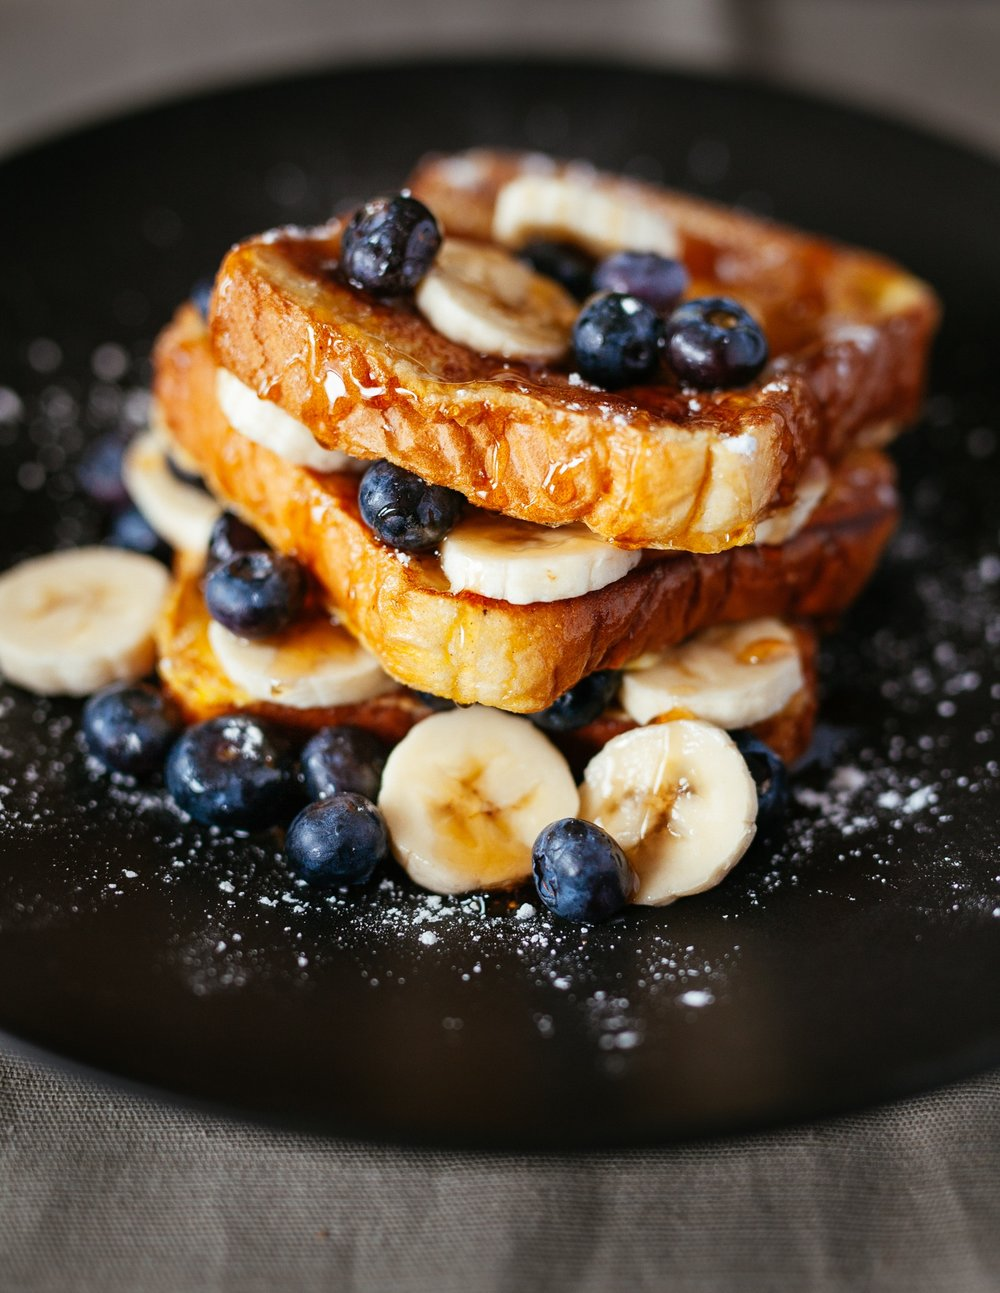 Vegan french toast with blueberries and banana